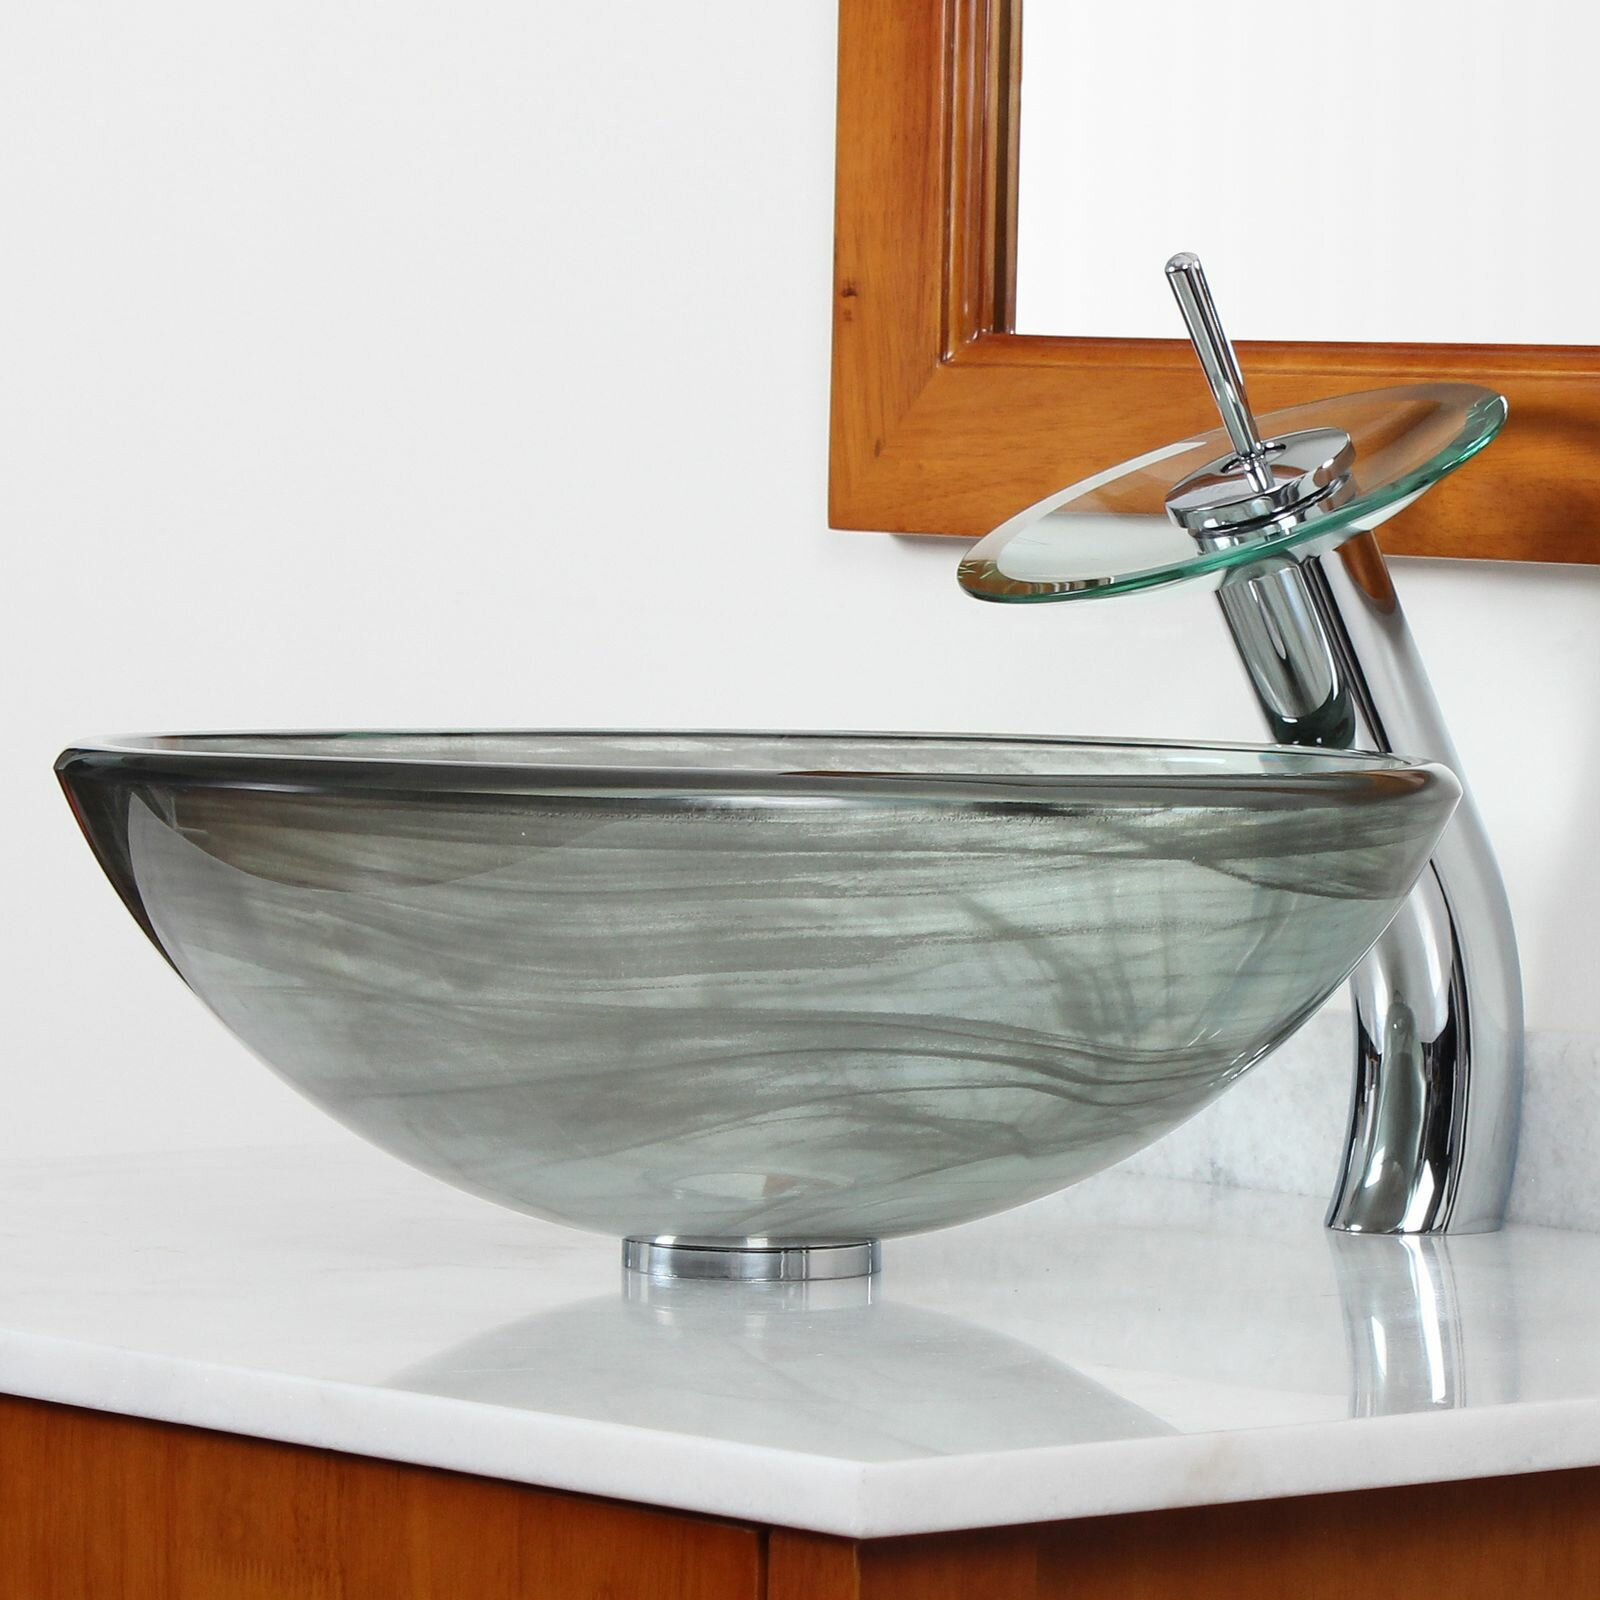 elite double layered tempered glass bowl vessel bathroom sink reviews wayfair. Black Bedroom Furniture Sets. Home Design Ideas